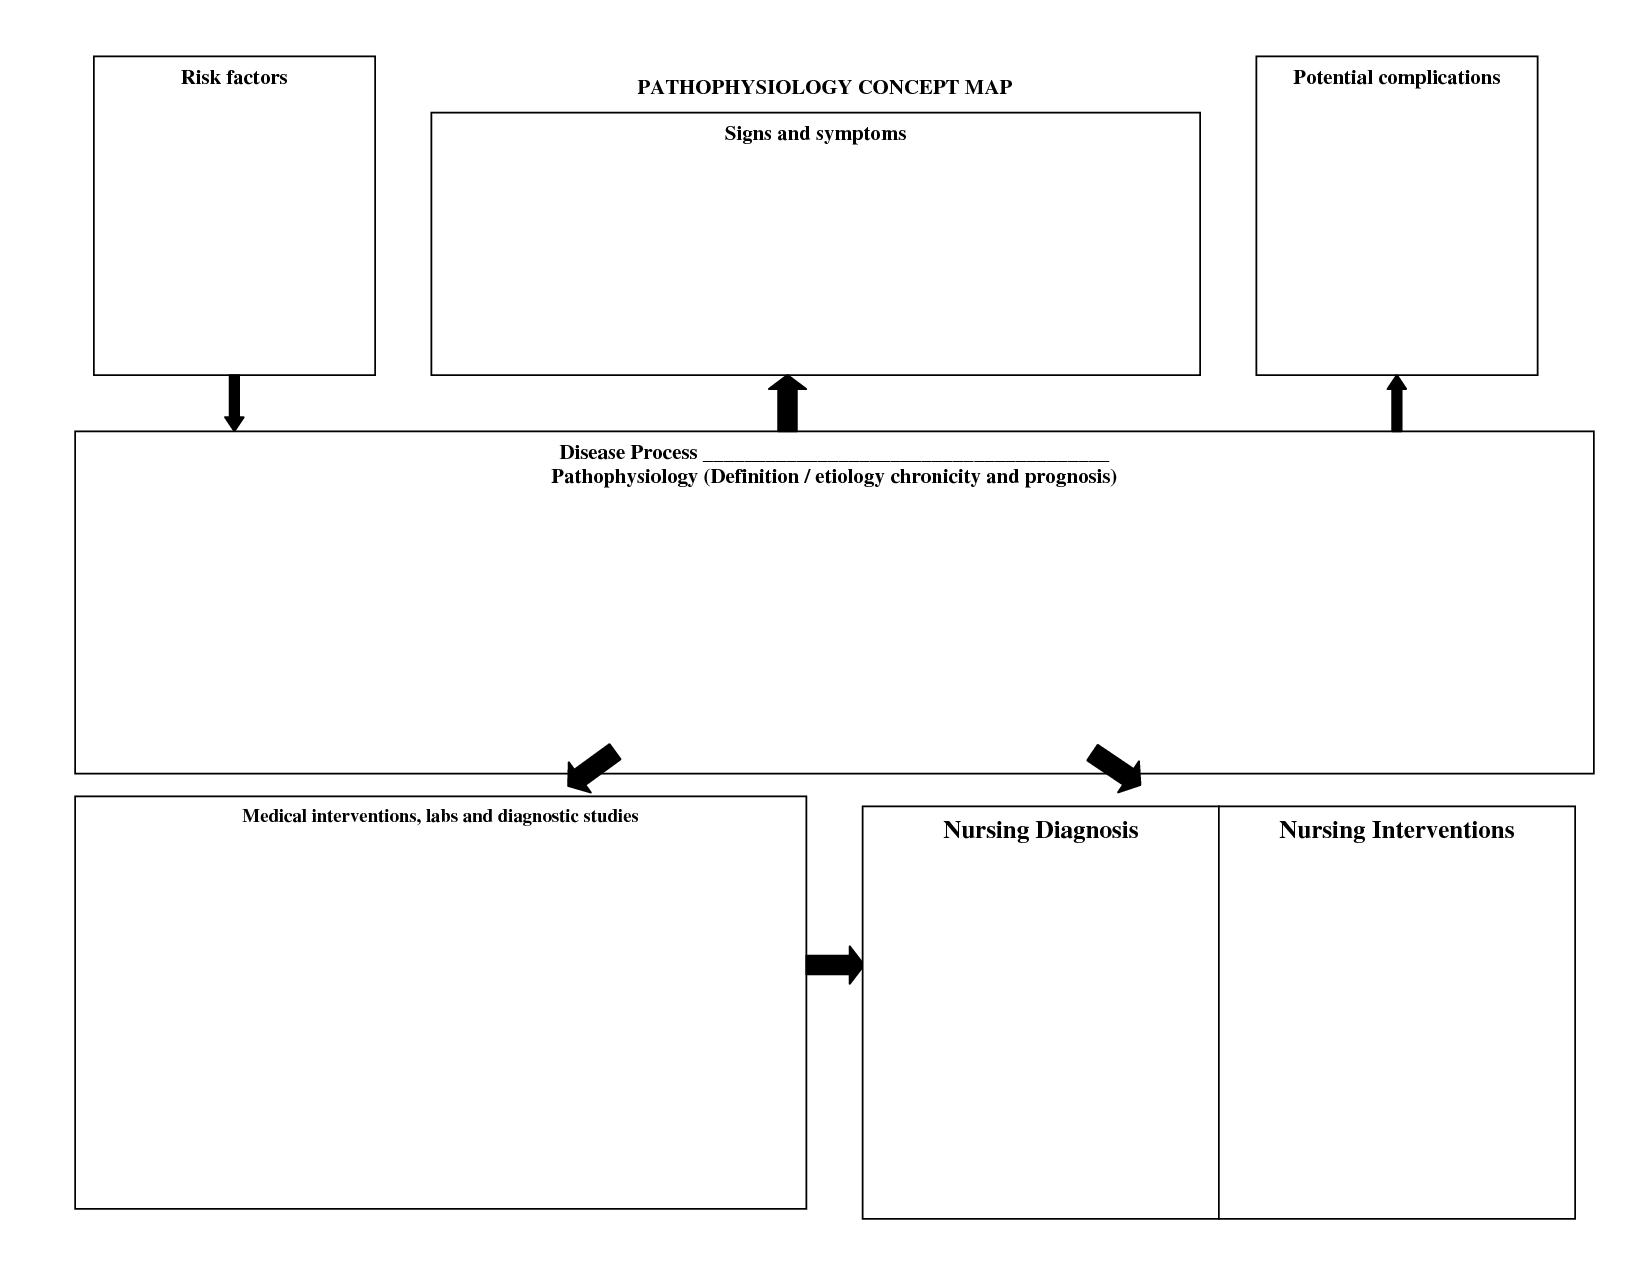 Nursing Diagnosis Concept Map Template | Nursing | Pinterest ...